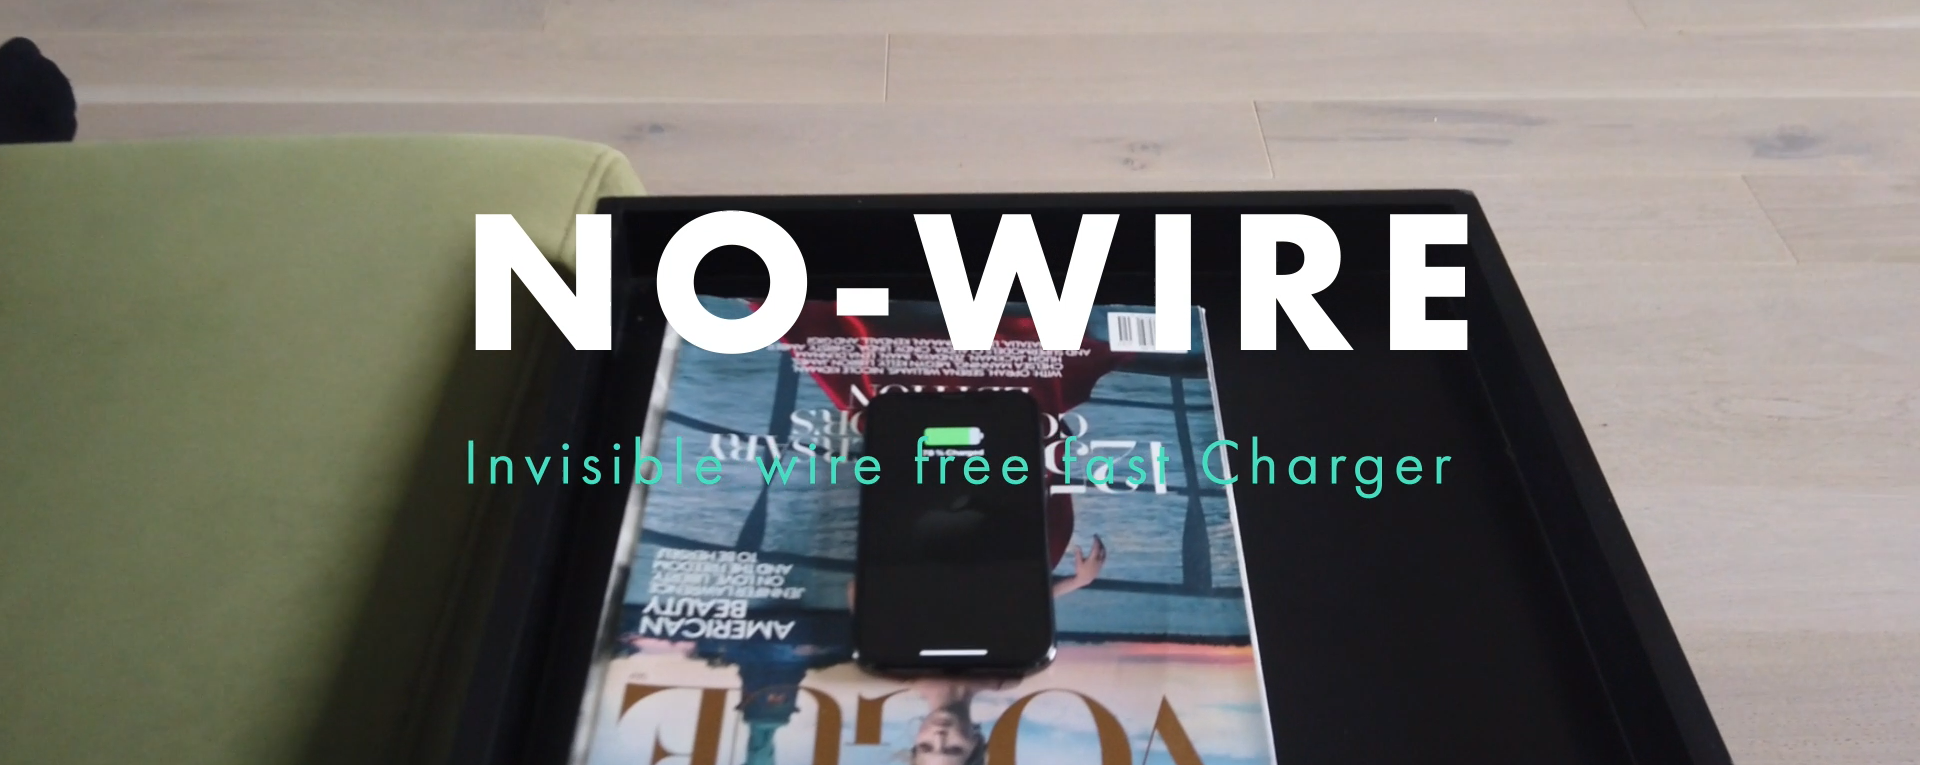 (c) No-wire.co.uk